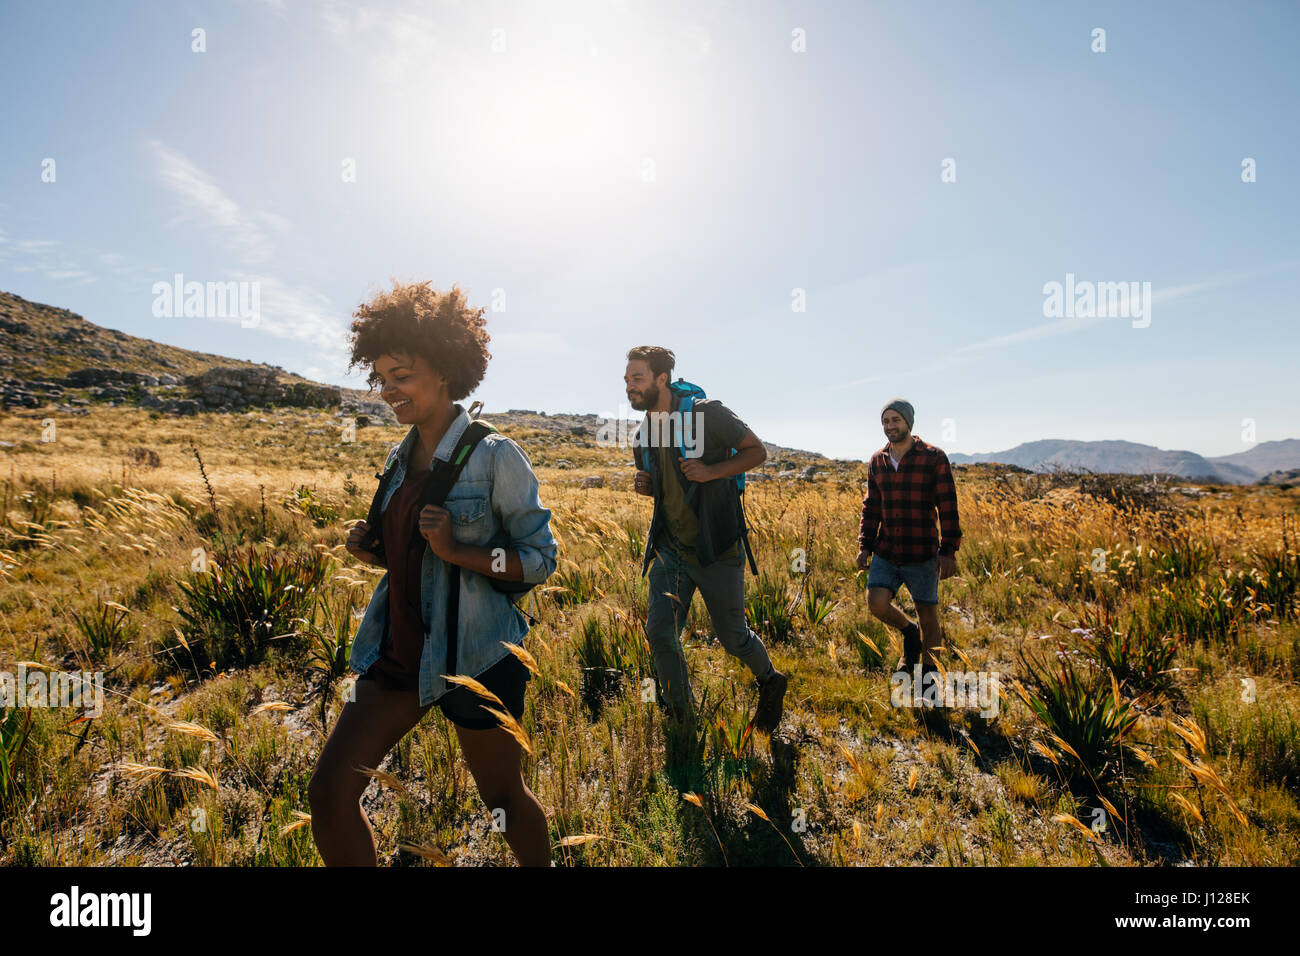 Group of people on walk through countryside. Happy young men and women hiking together on a summer day. - Stock Image